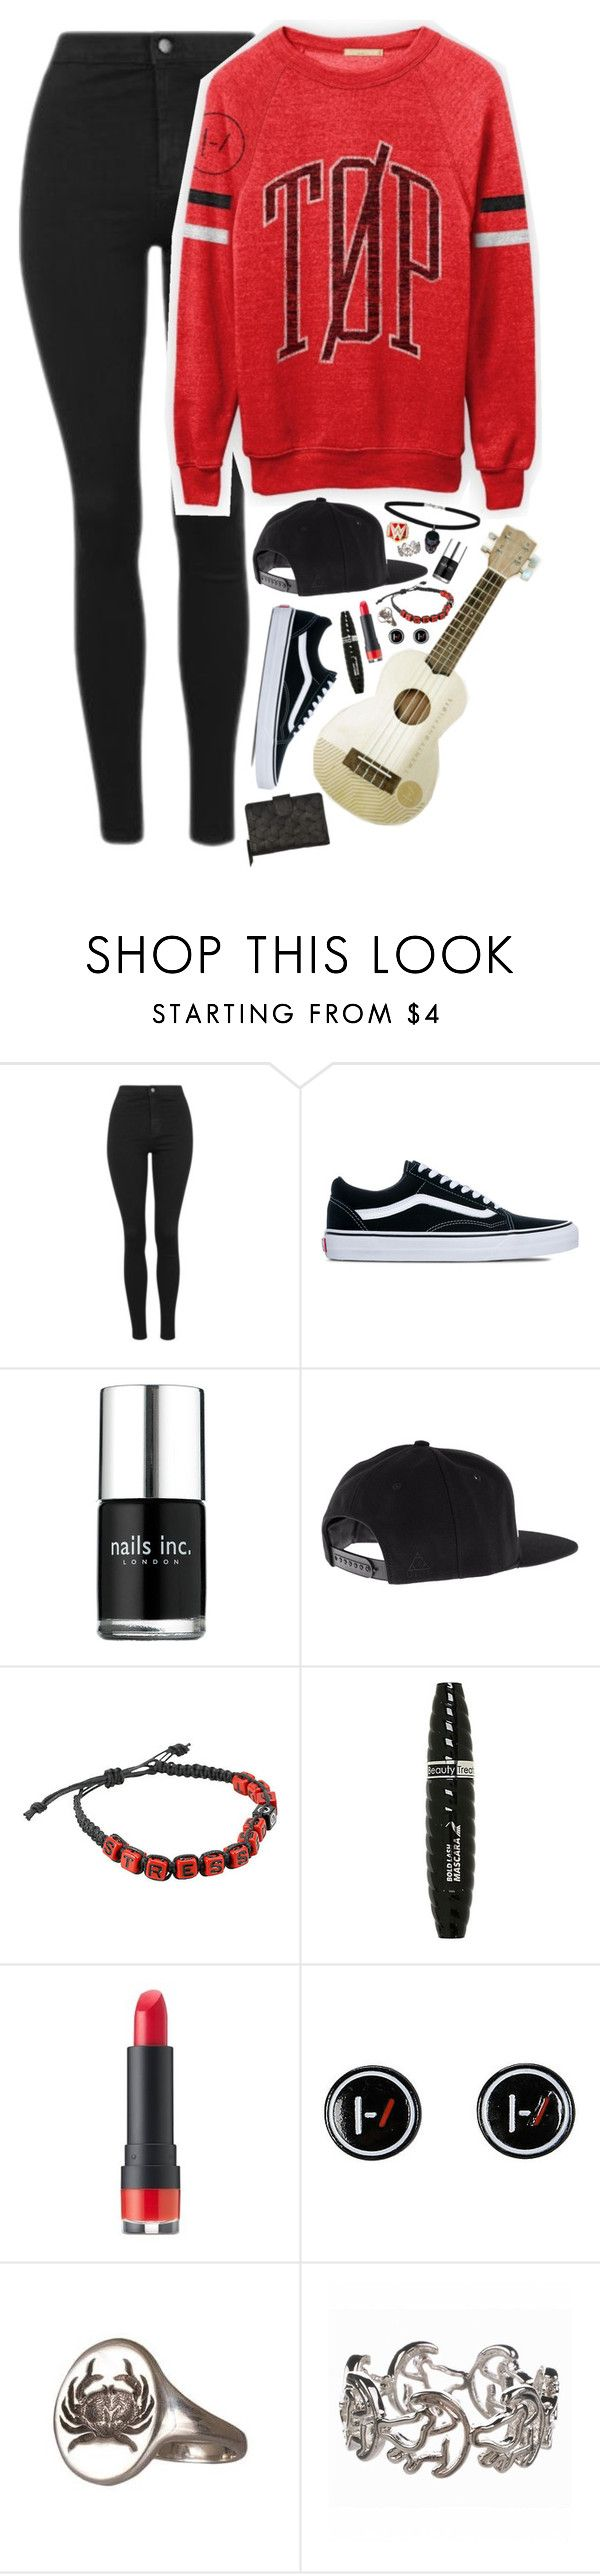 """THE TWENTY ONE PILOTS COVER OF CANCER JUST DROPPED AND I AM SHOOK AF 